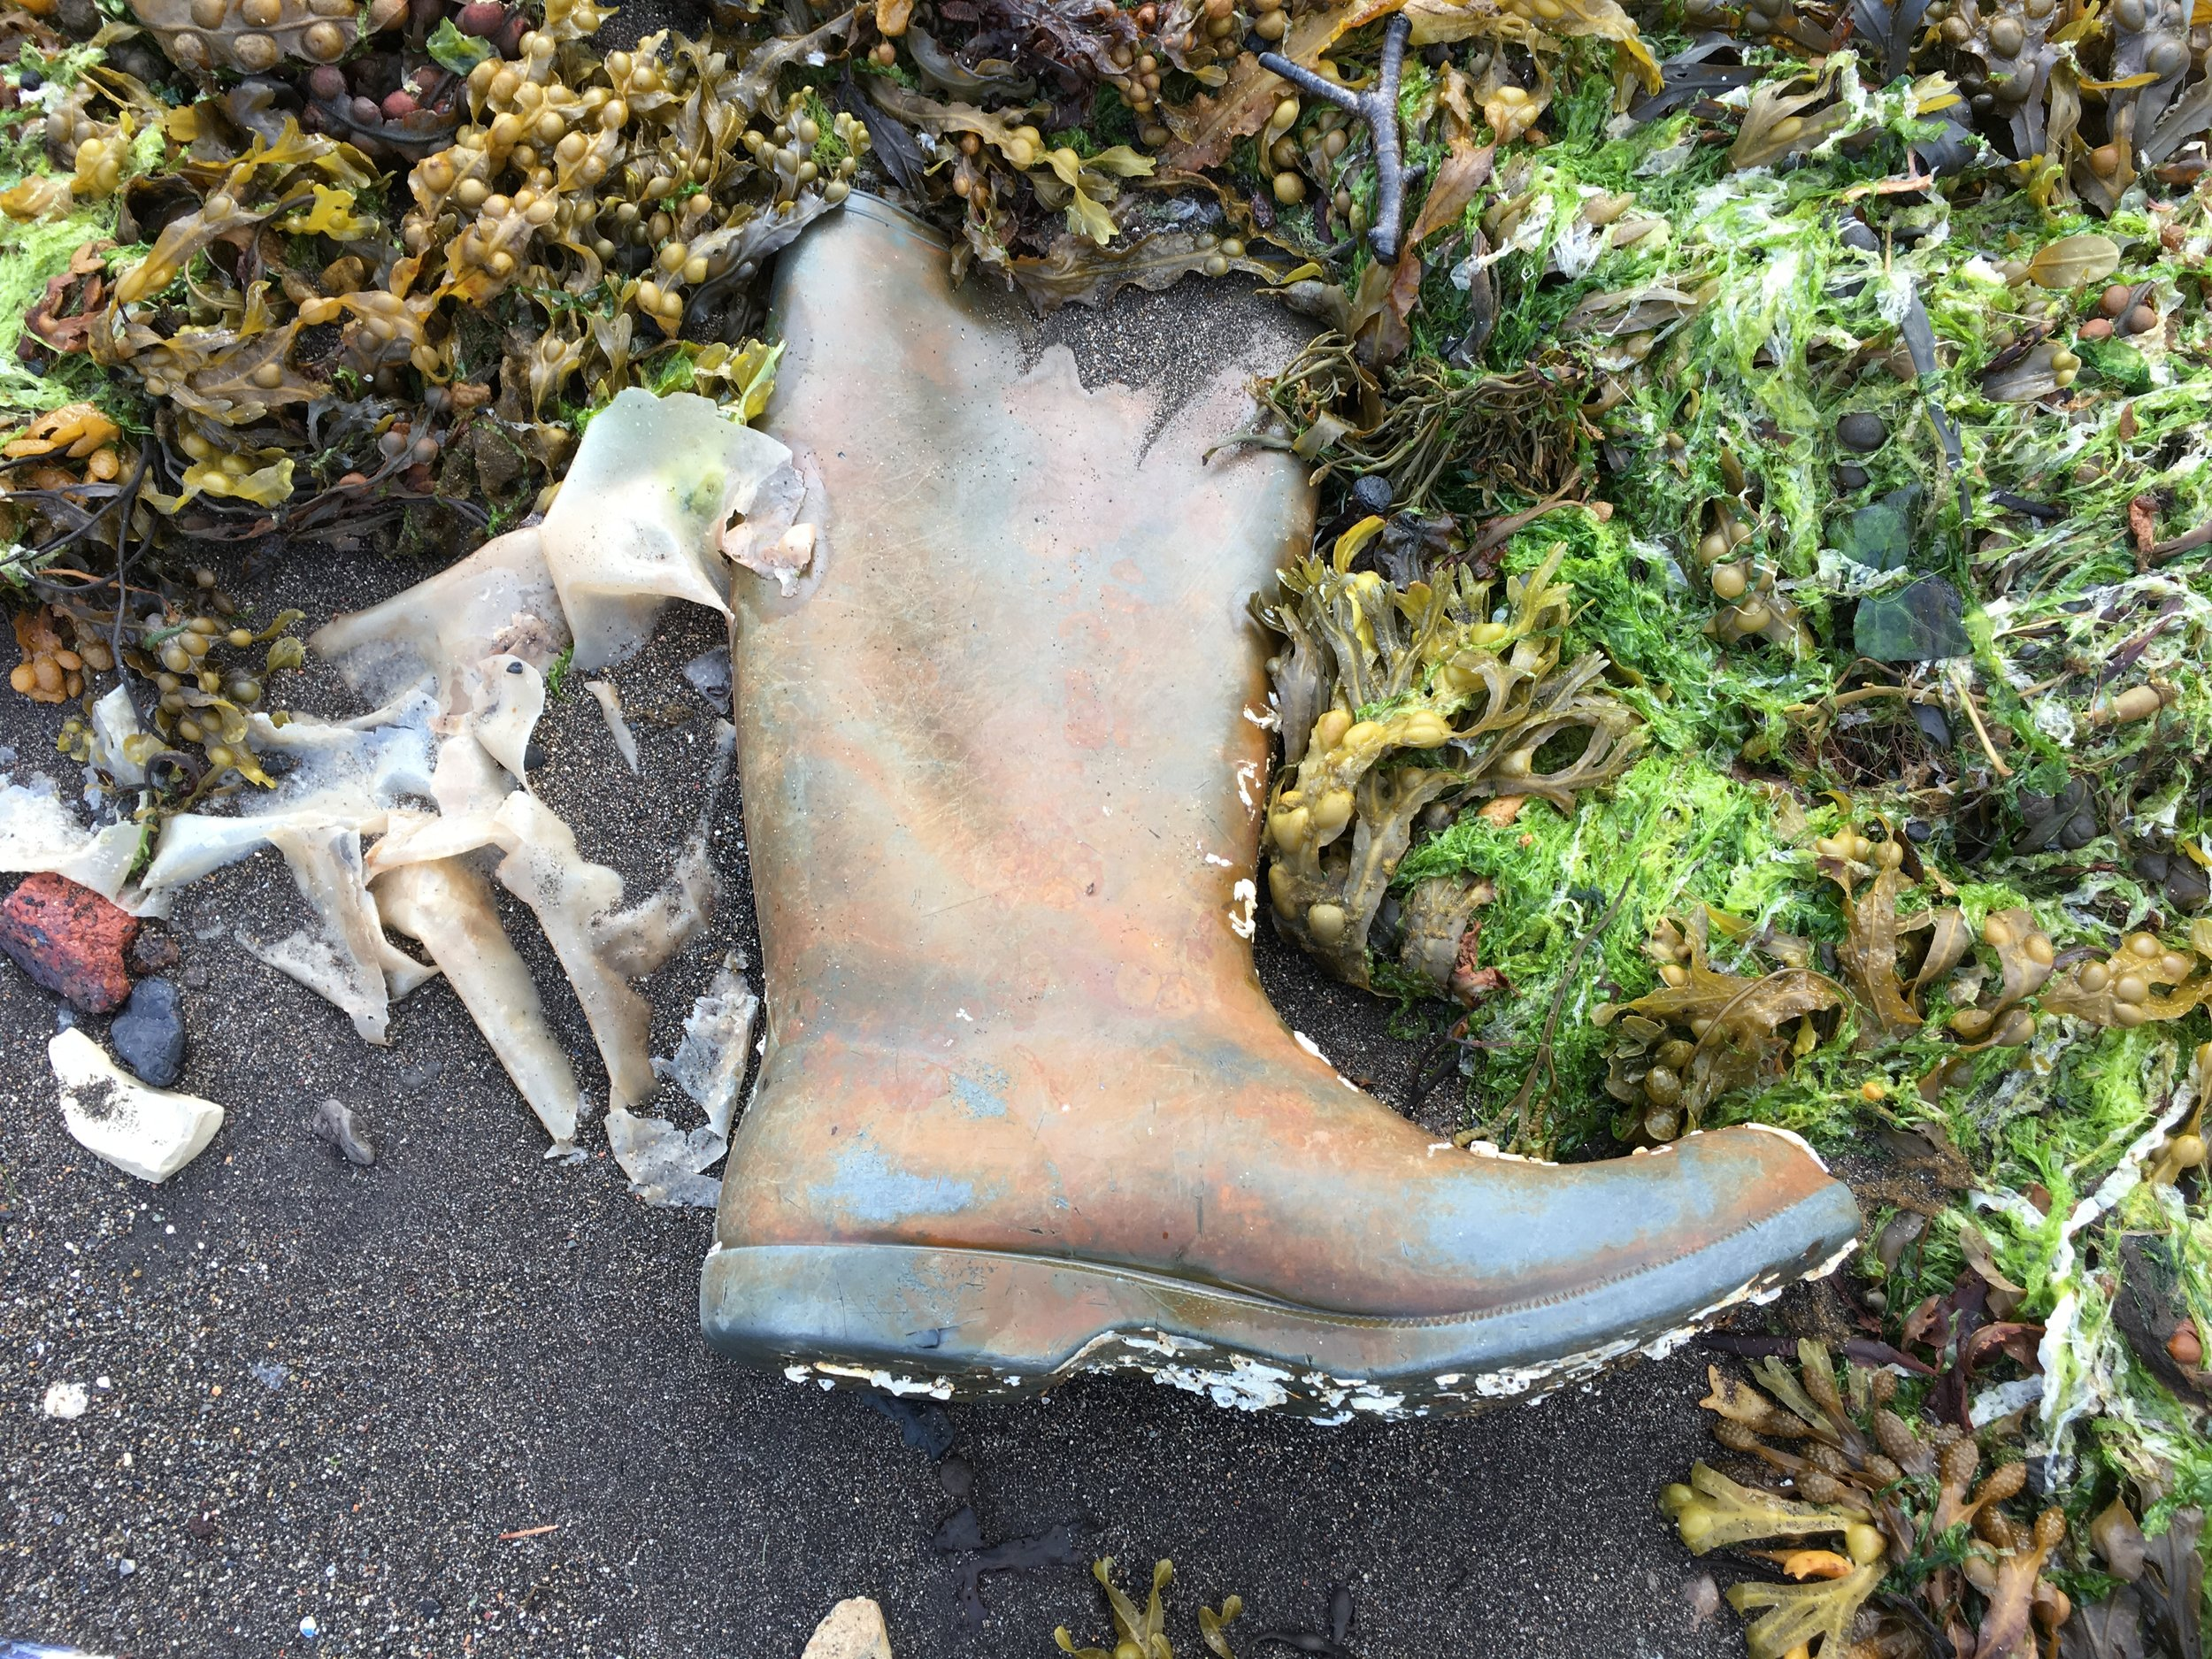 We were fascinated by a lone, welly boot on the shore that first night, wondering about its story. Each day we saw it washing up in a different place until suddenly on our last day it was gone.....